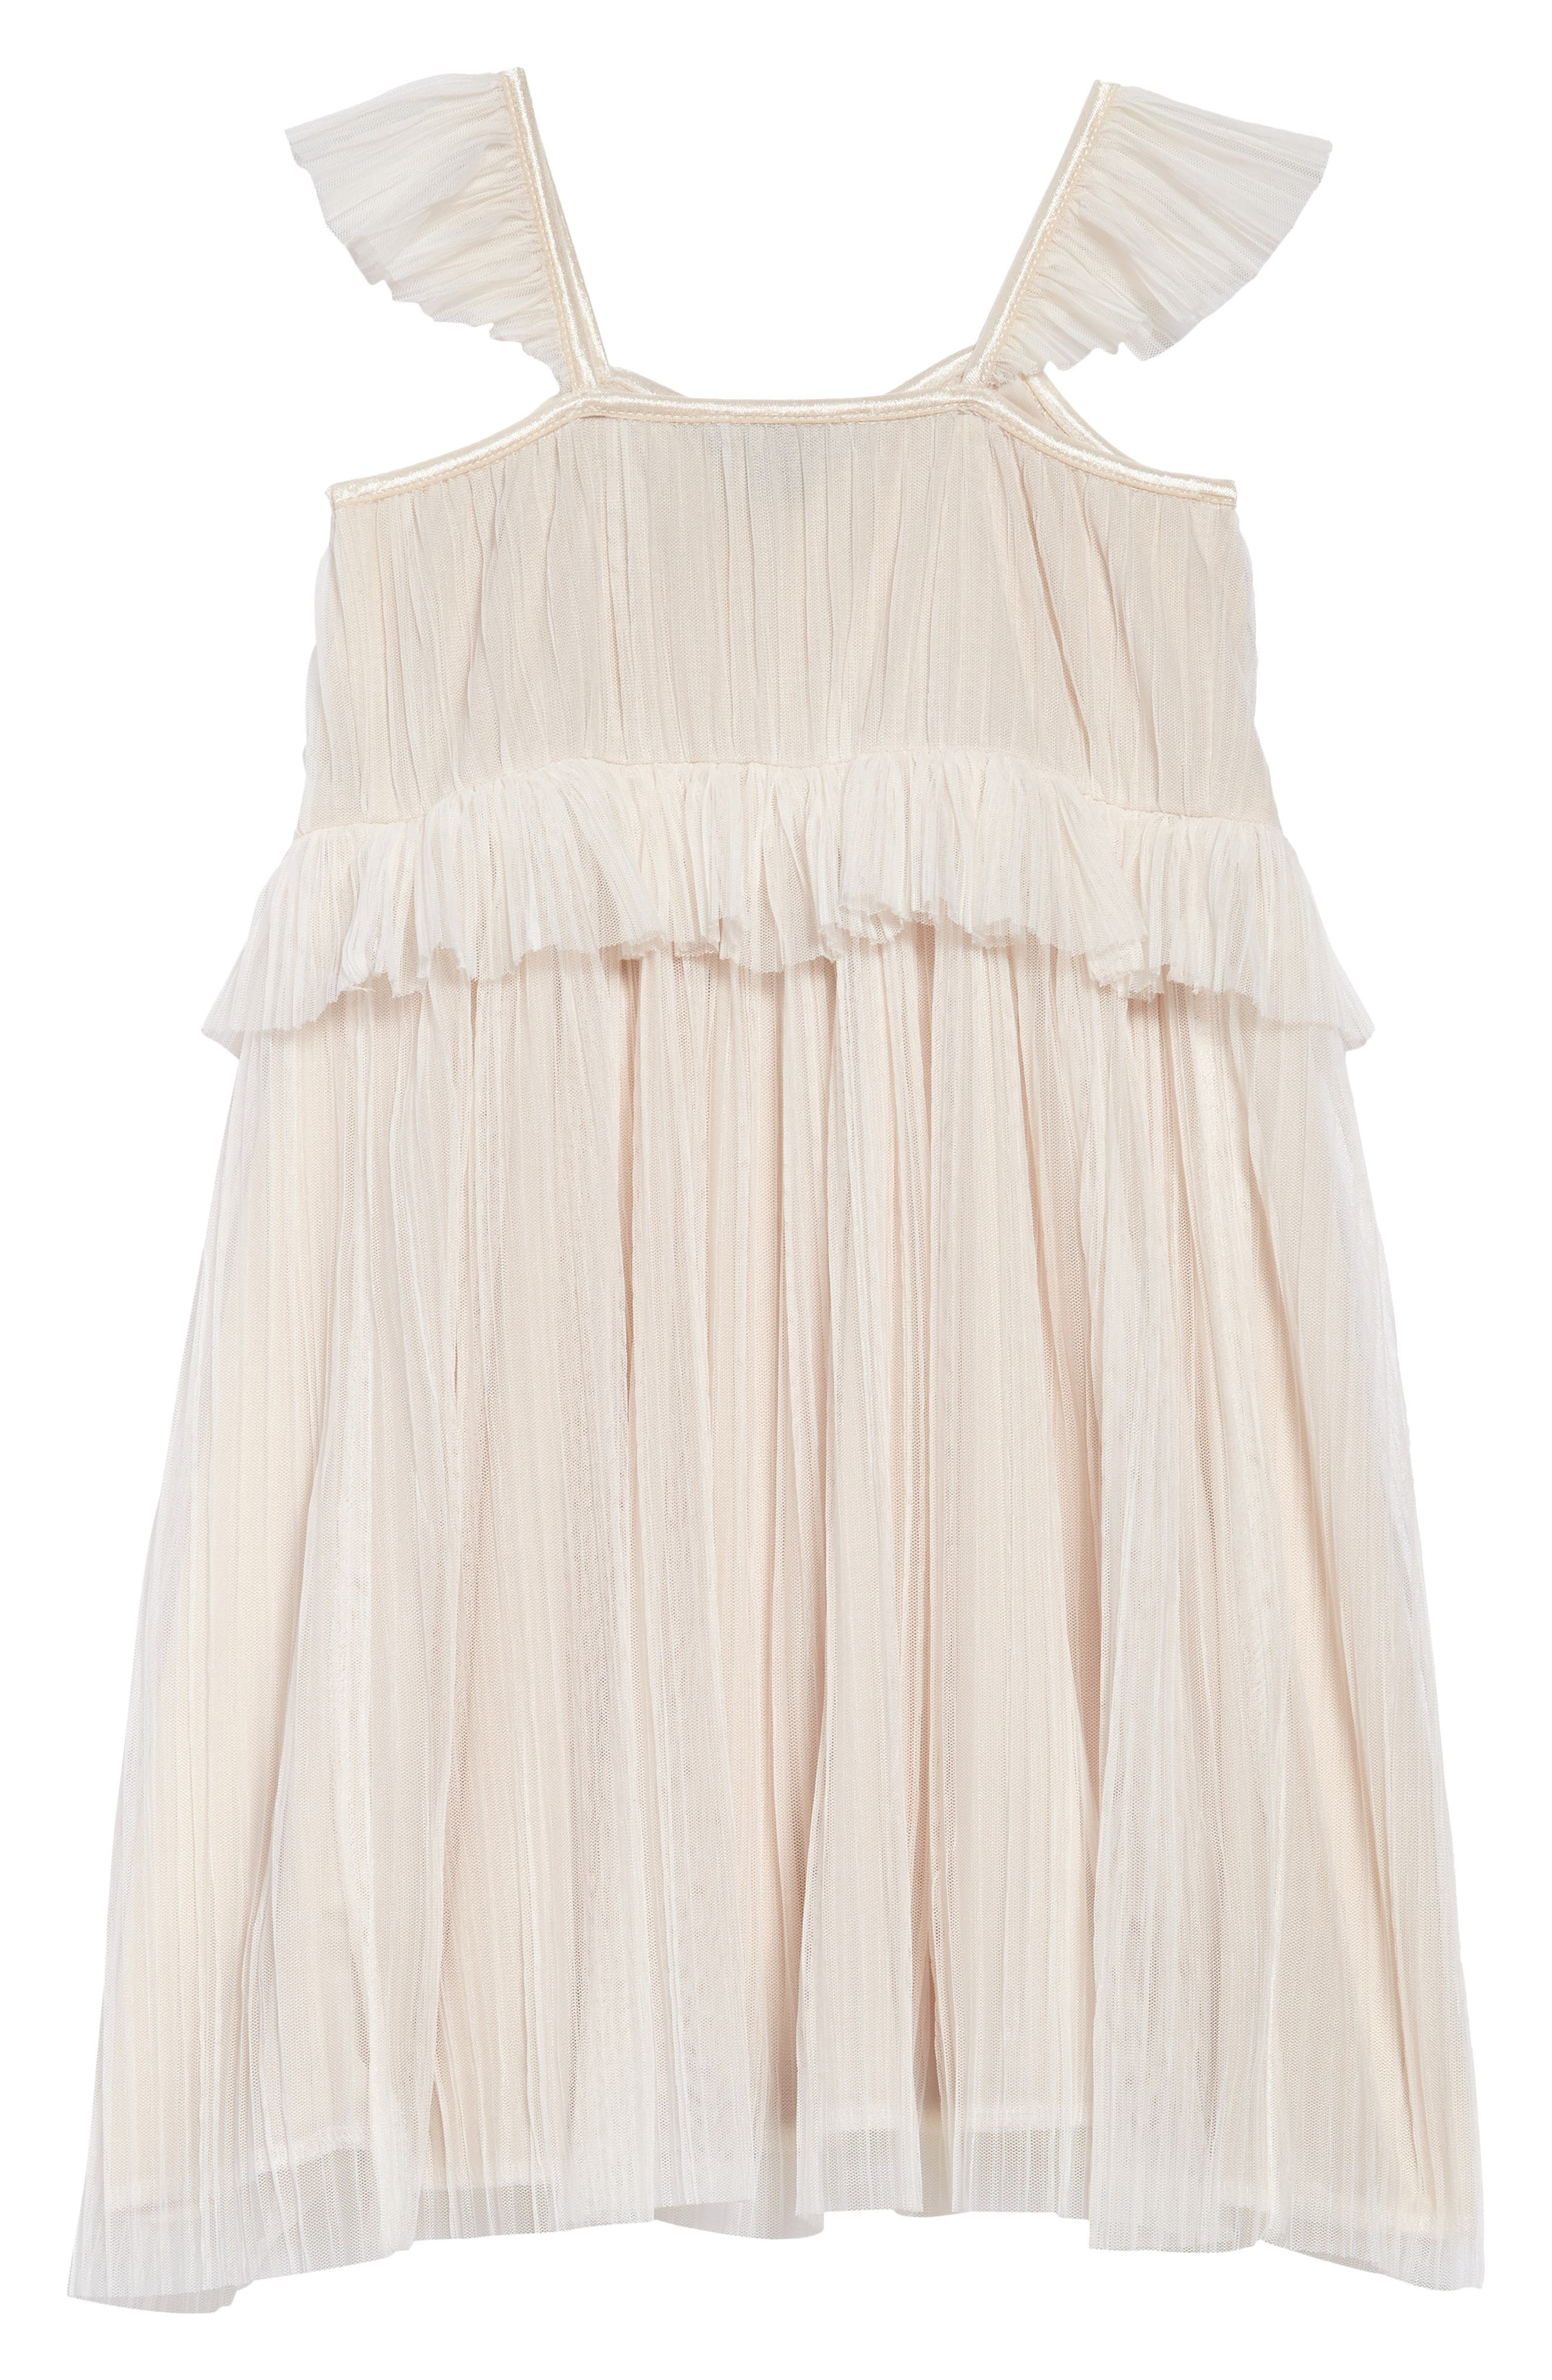 AVA & YELLY,                             Accordion Pleated Dress,                             Alternate thumbnail 2, color,                             250